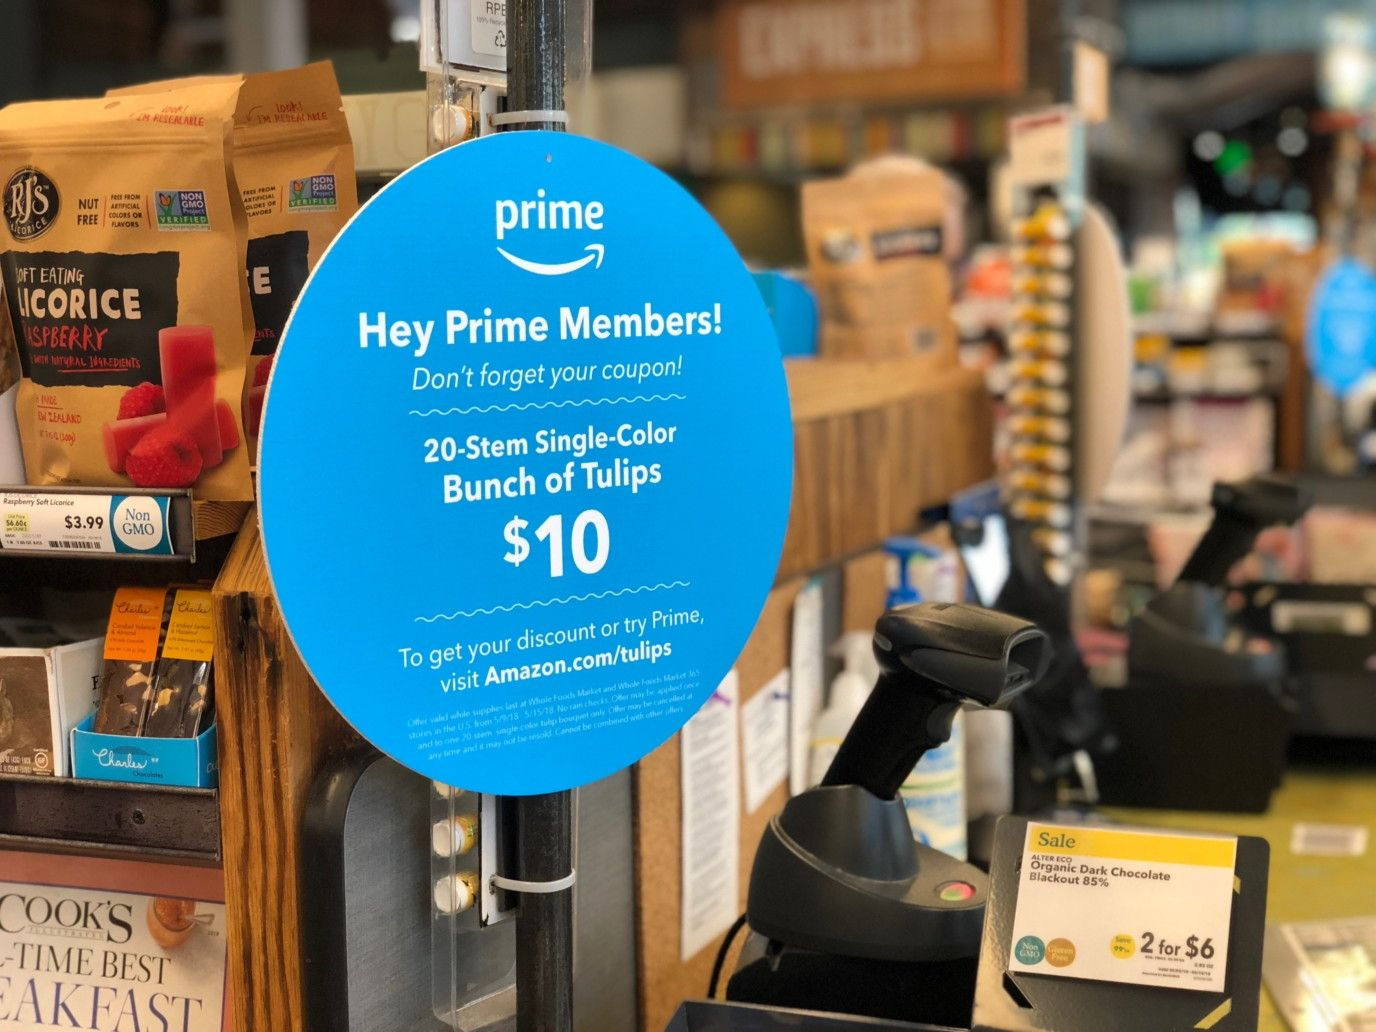 Hey, Prime Members! Now You Can Get an Extra 10 Off at